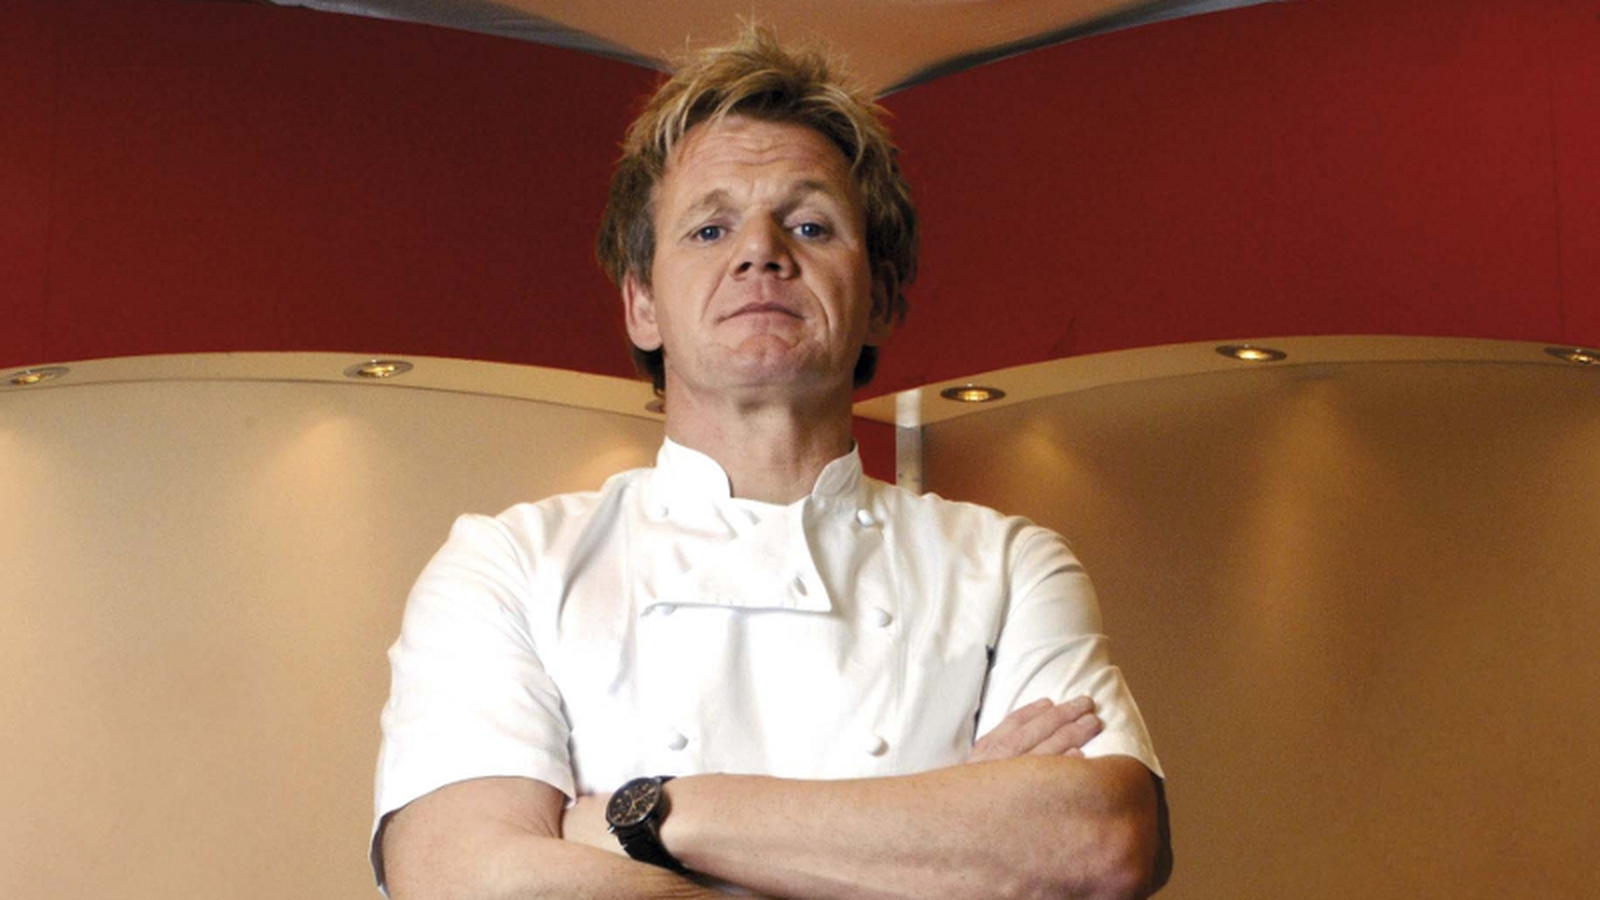 Heartbreak for Gordon Ramsay and wife after miscarriage